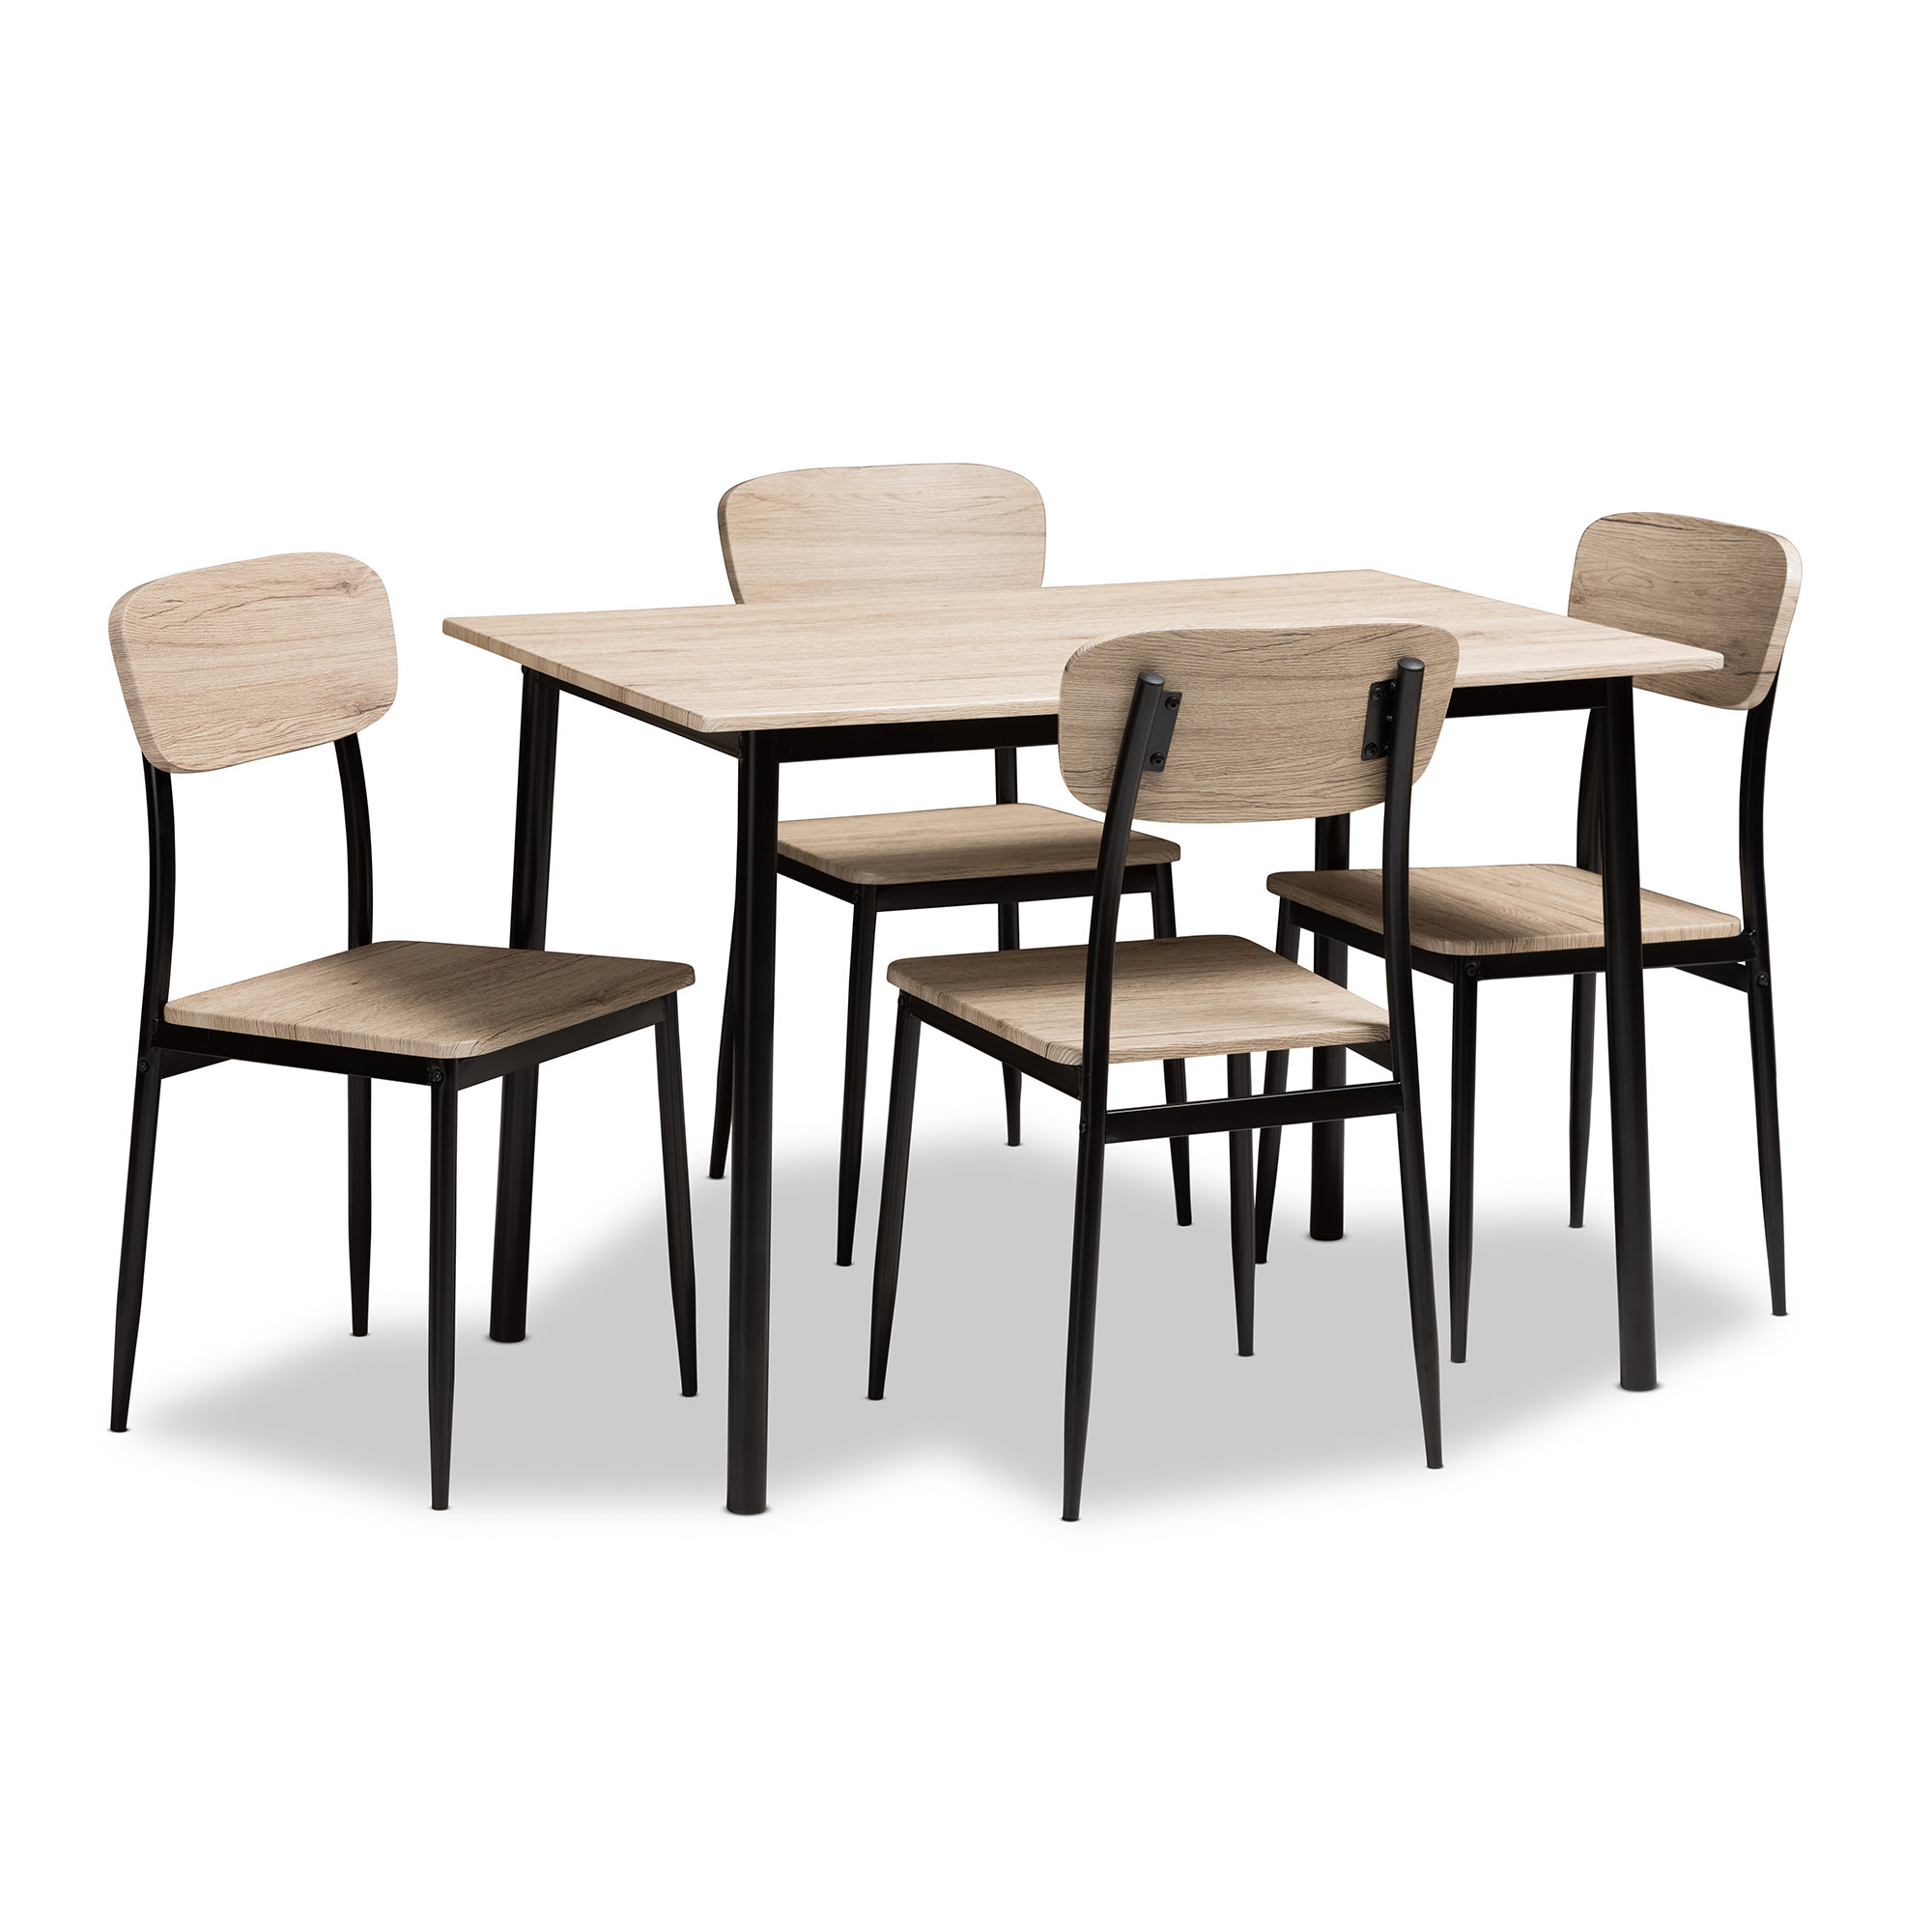 Telauges 5 Piece Dining Sets Within Most Recently Released Millwood Pines Wiggs 5 Piece Dining Set (Gallery 8 of 20)